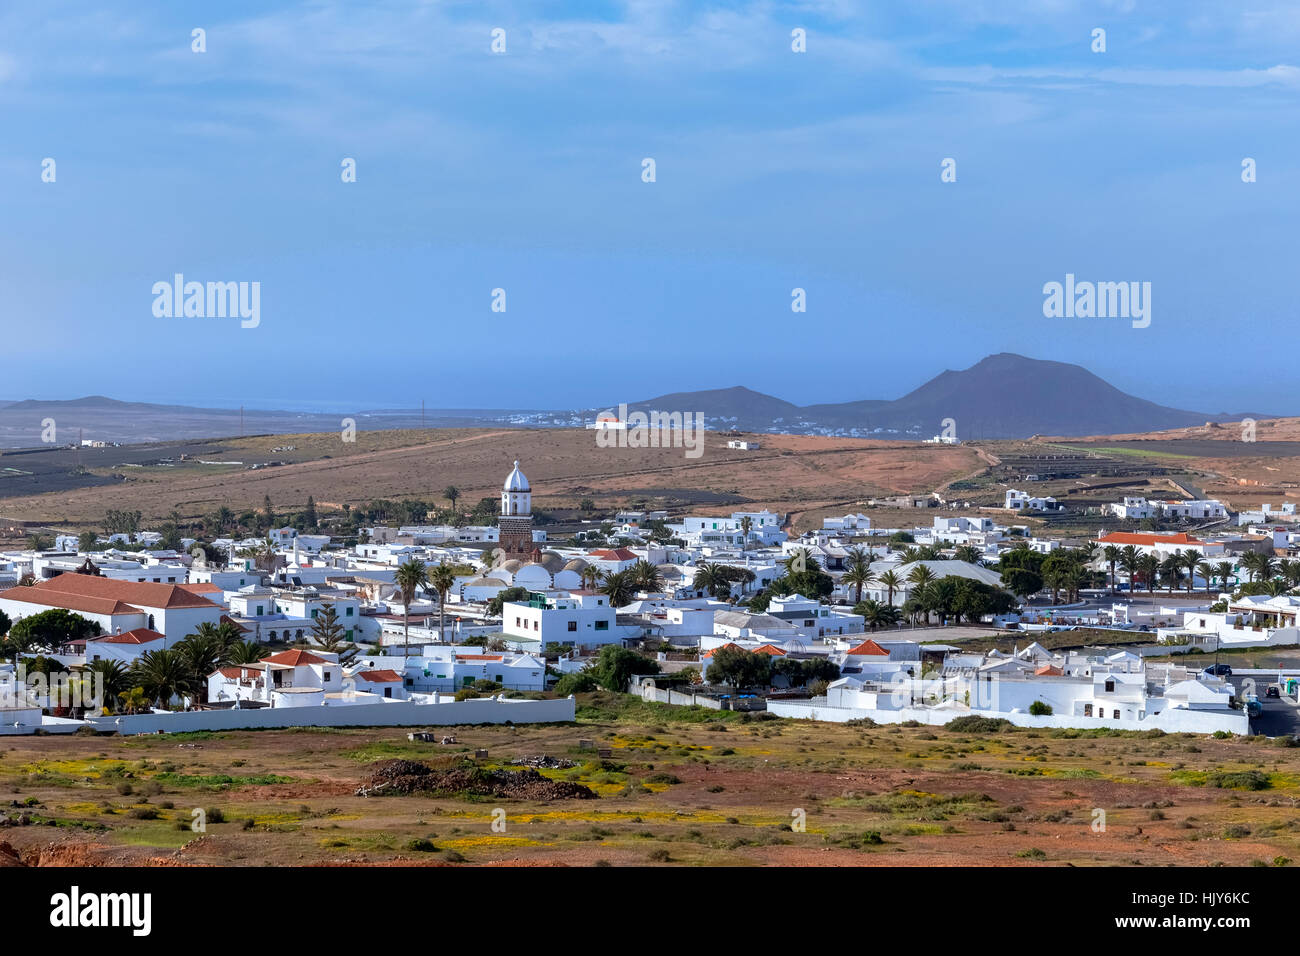 Teguise, Lanzarote, Canary Islands, Spain - Stock Image